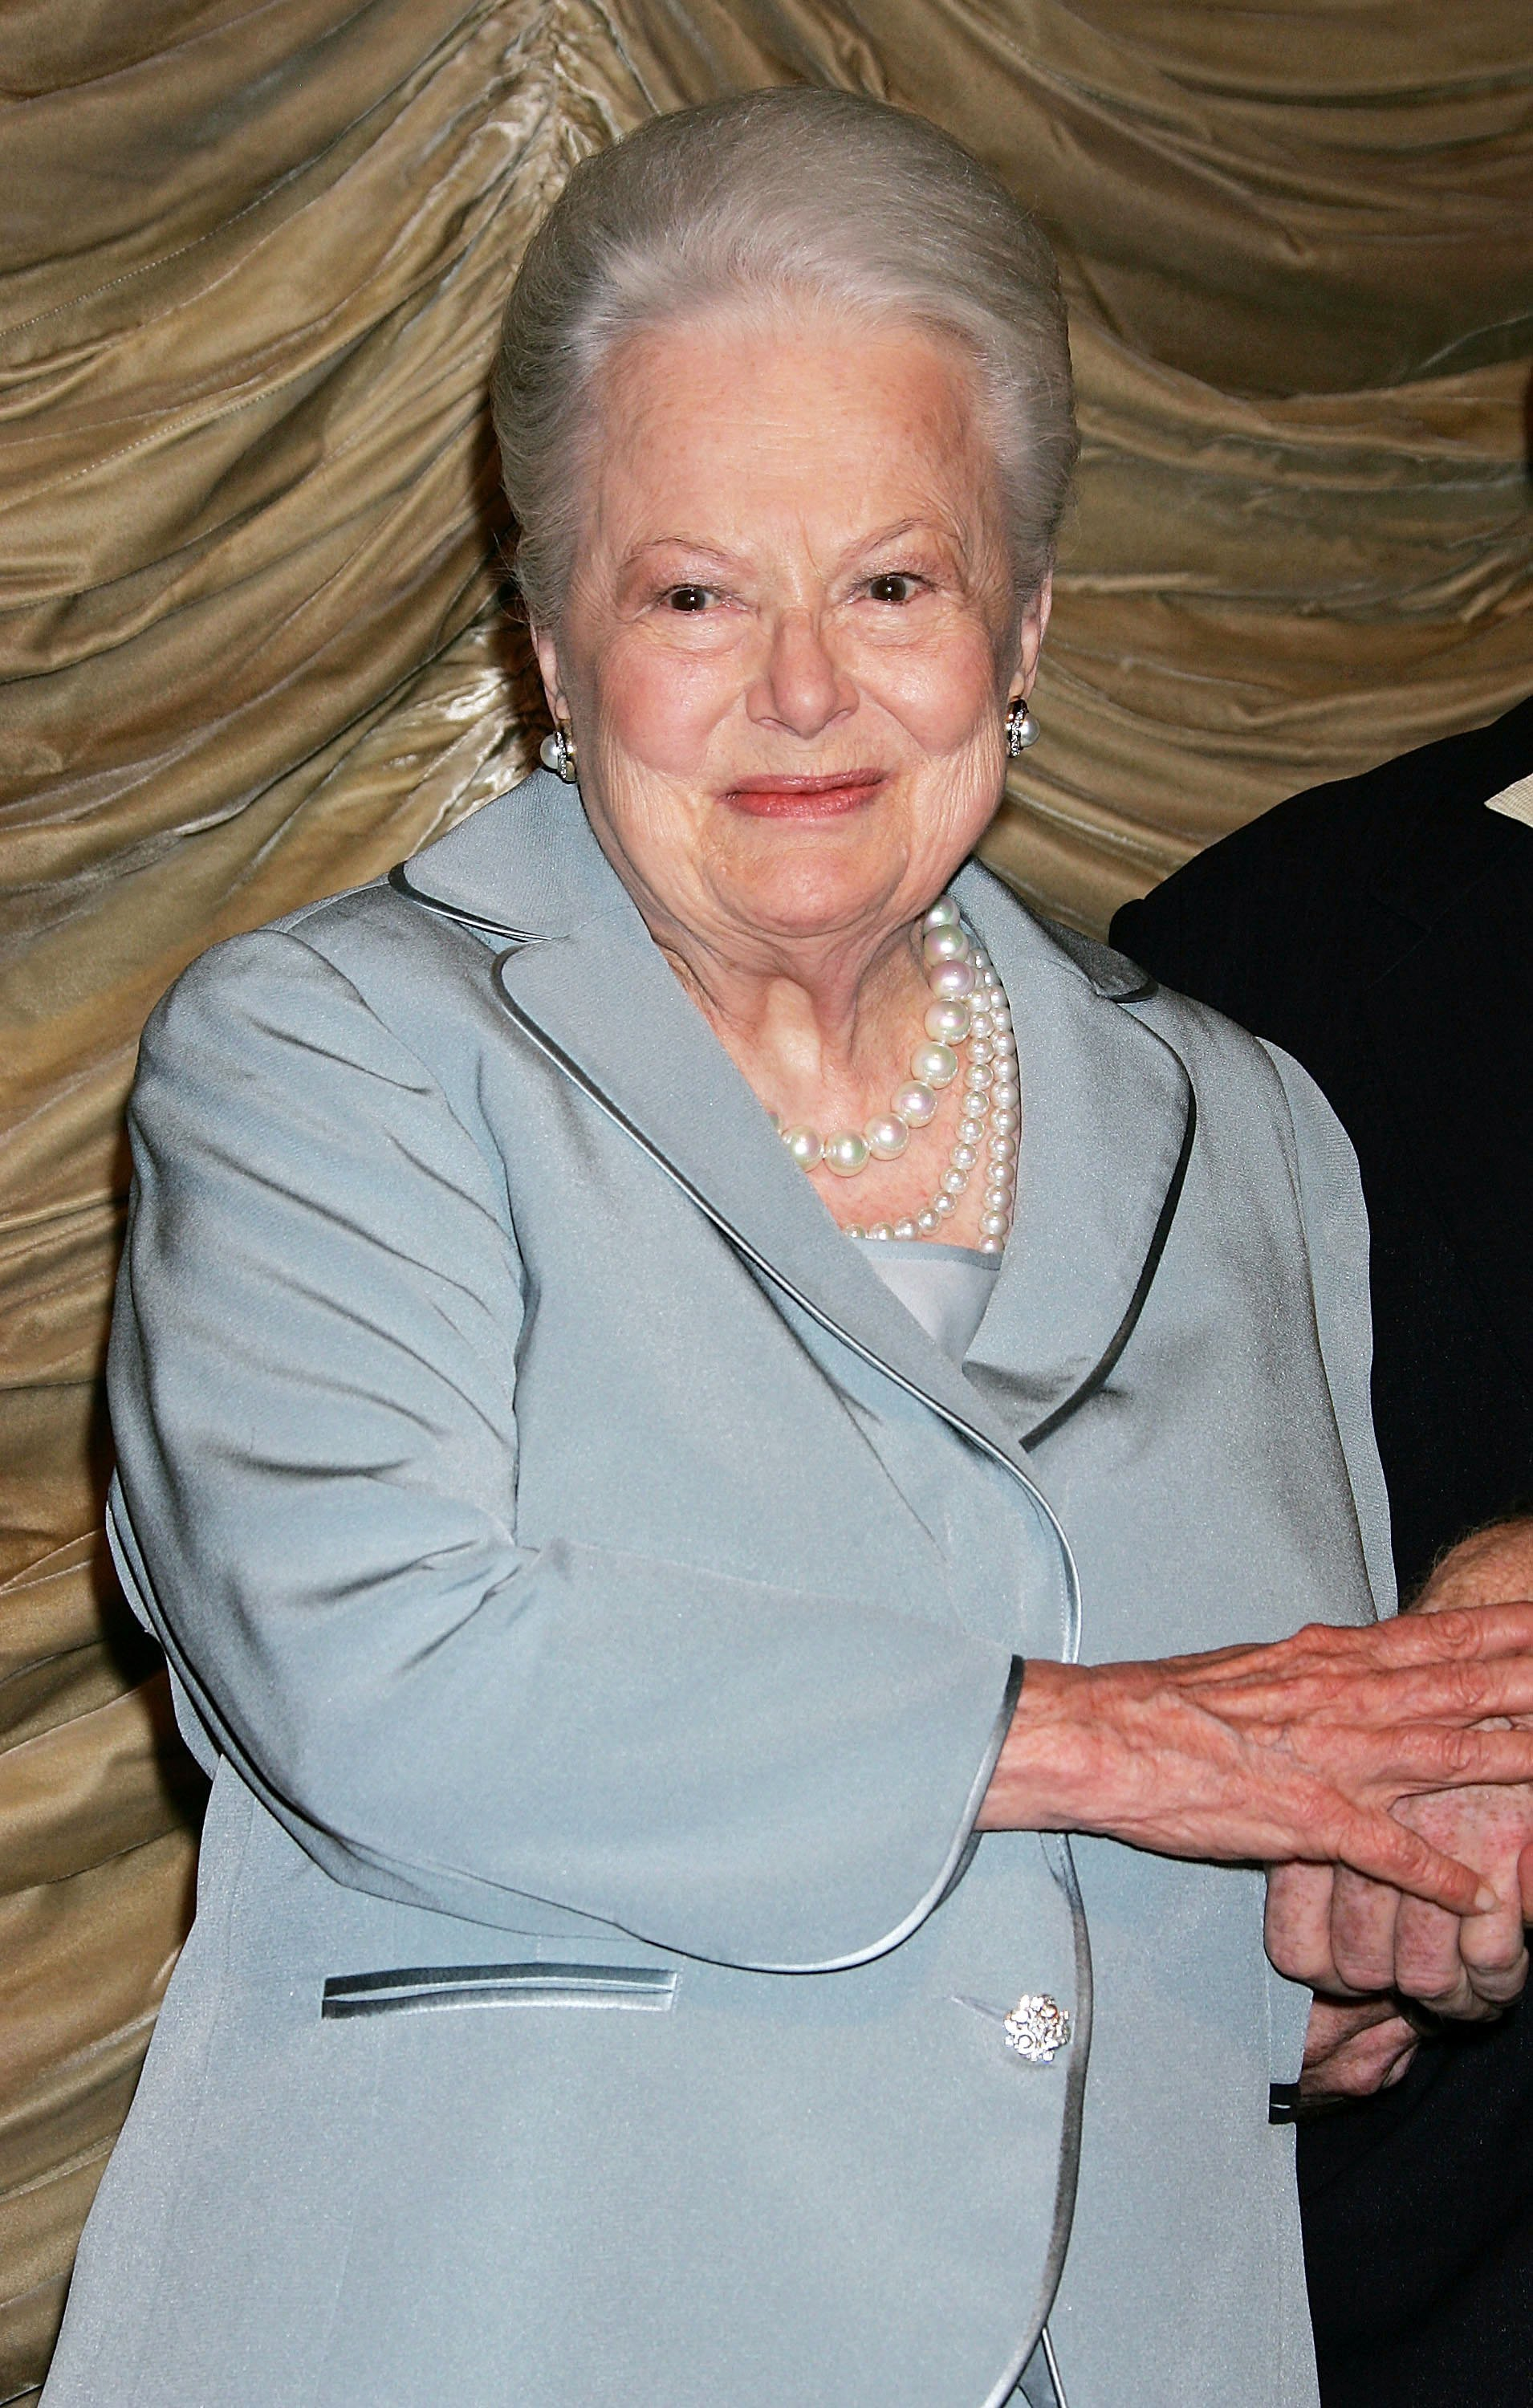 Image Credits: Getty Images | Olivia de Havilland passed away at 104 years old